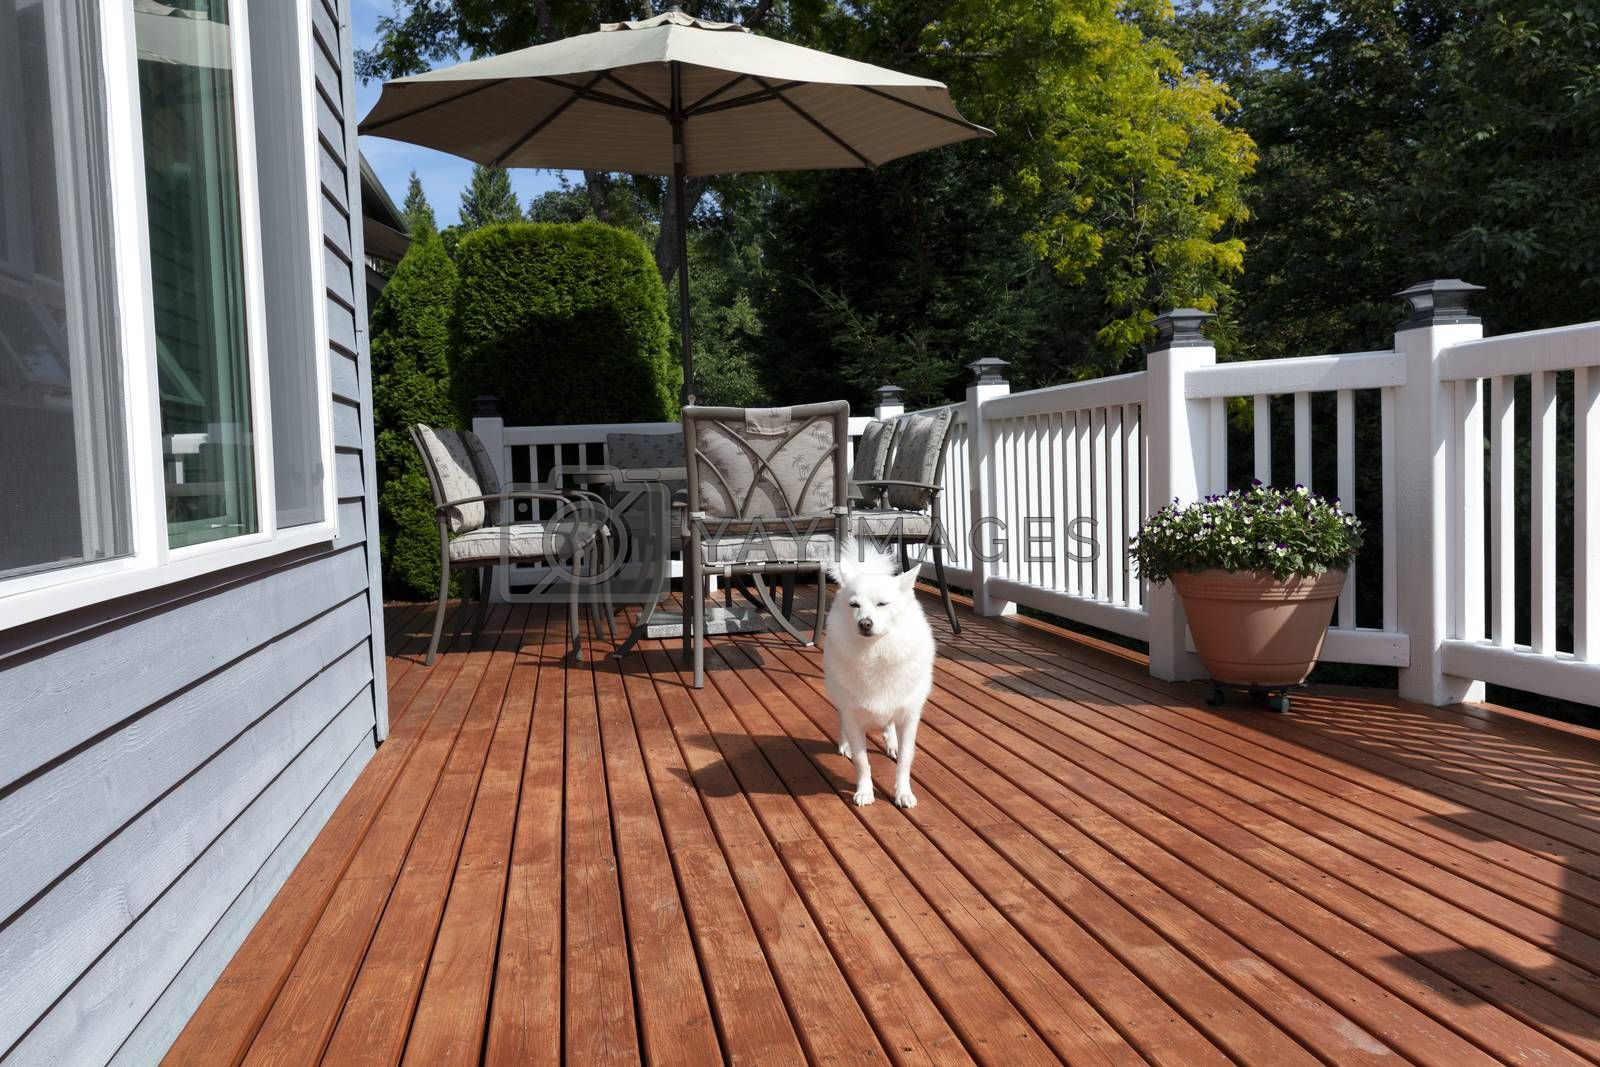 White family dog outdoors on home deck during summer time